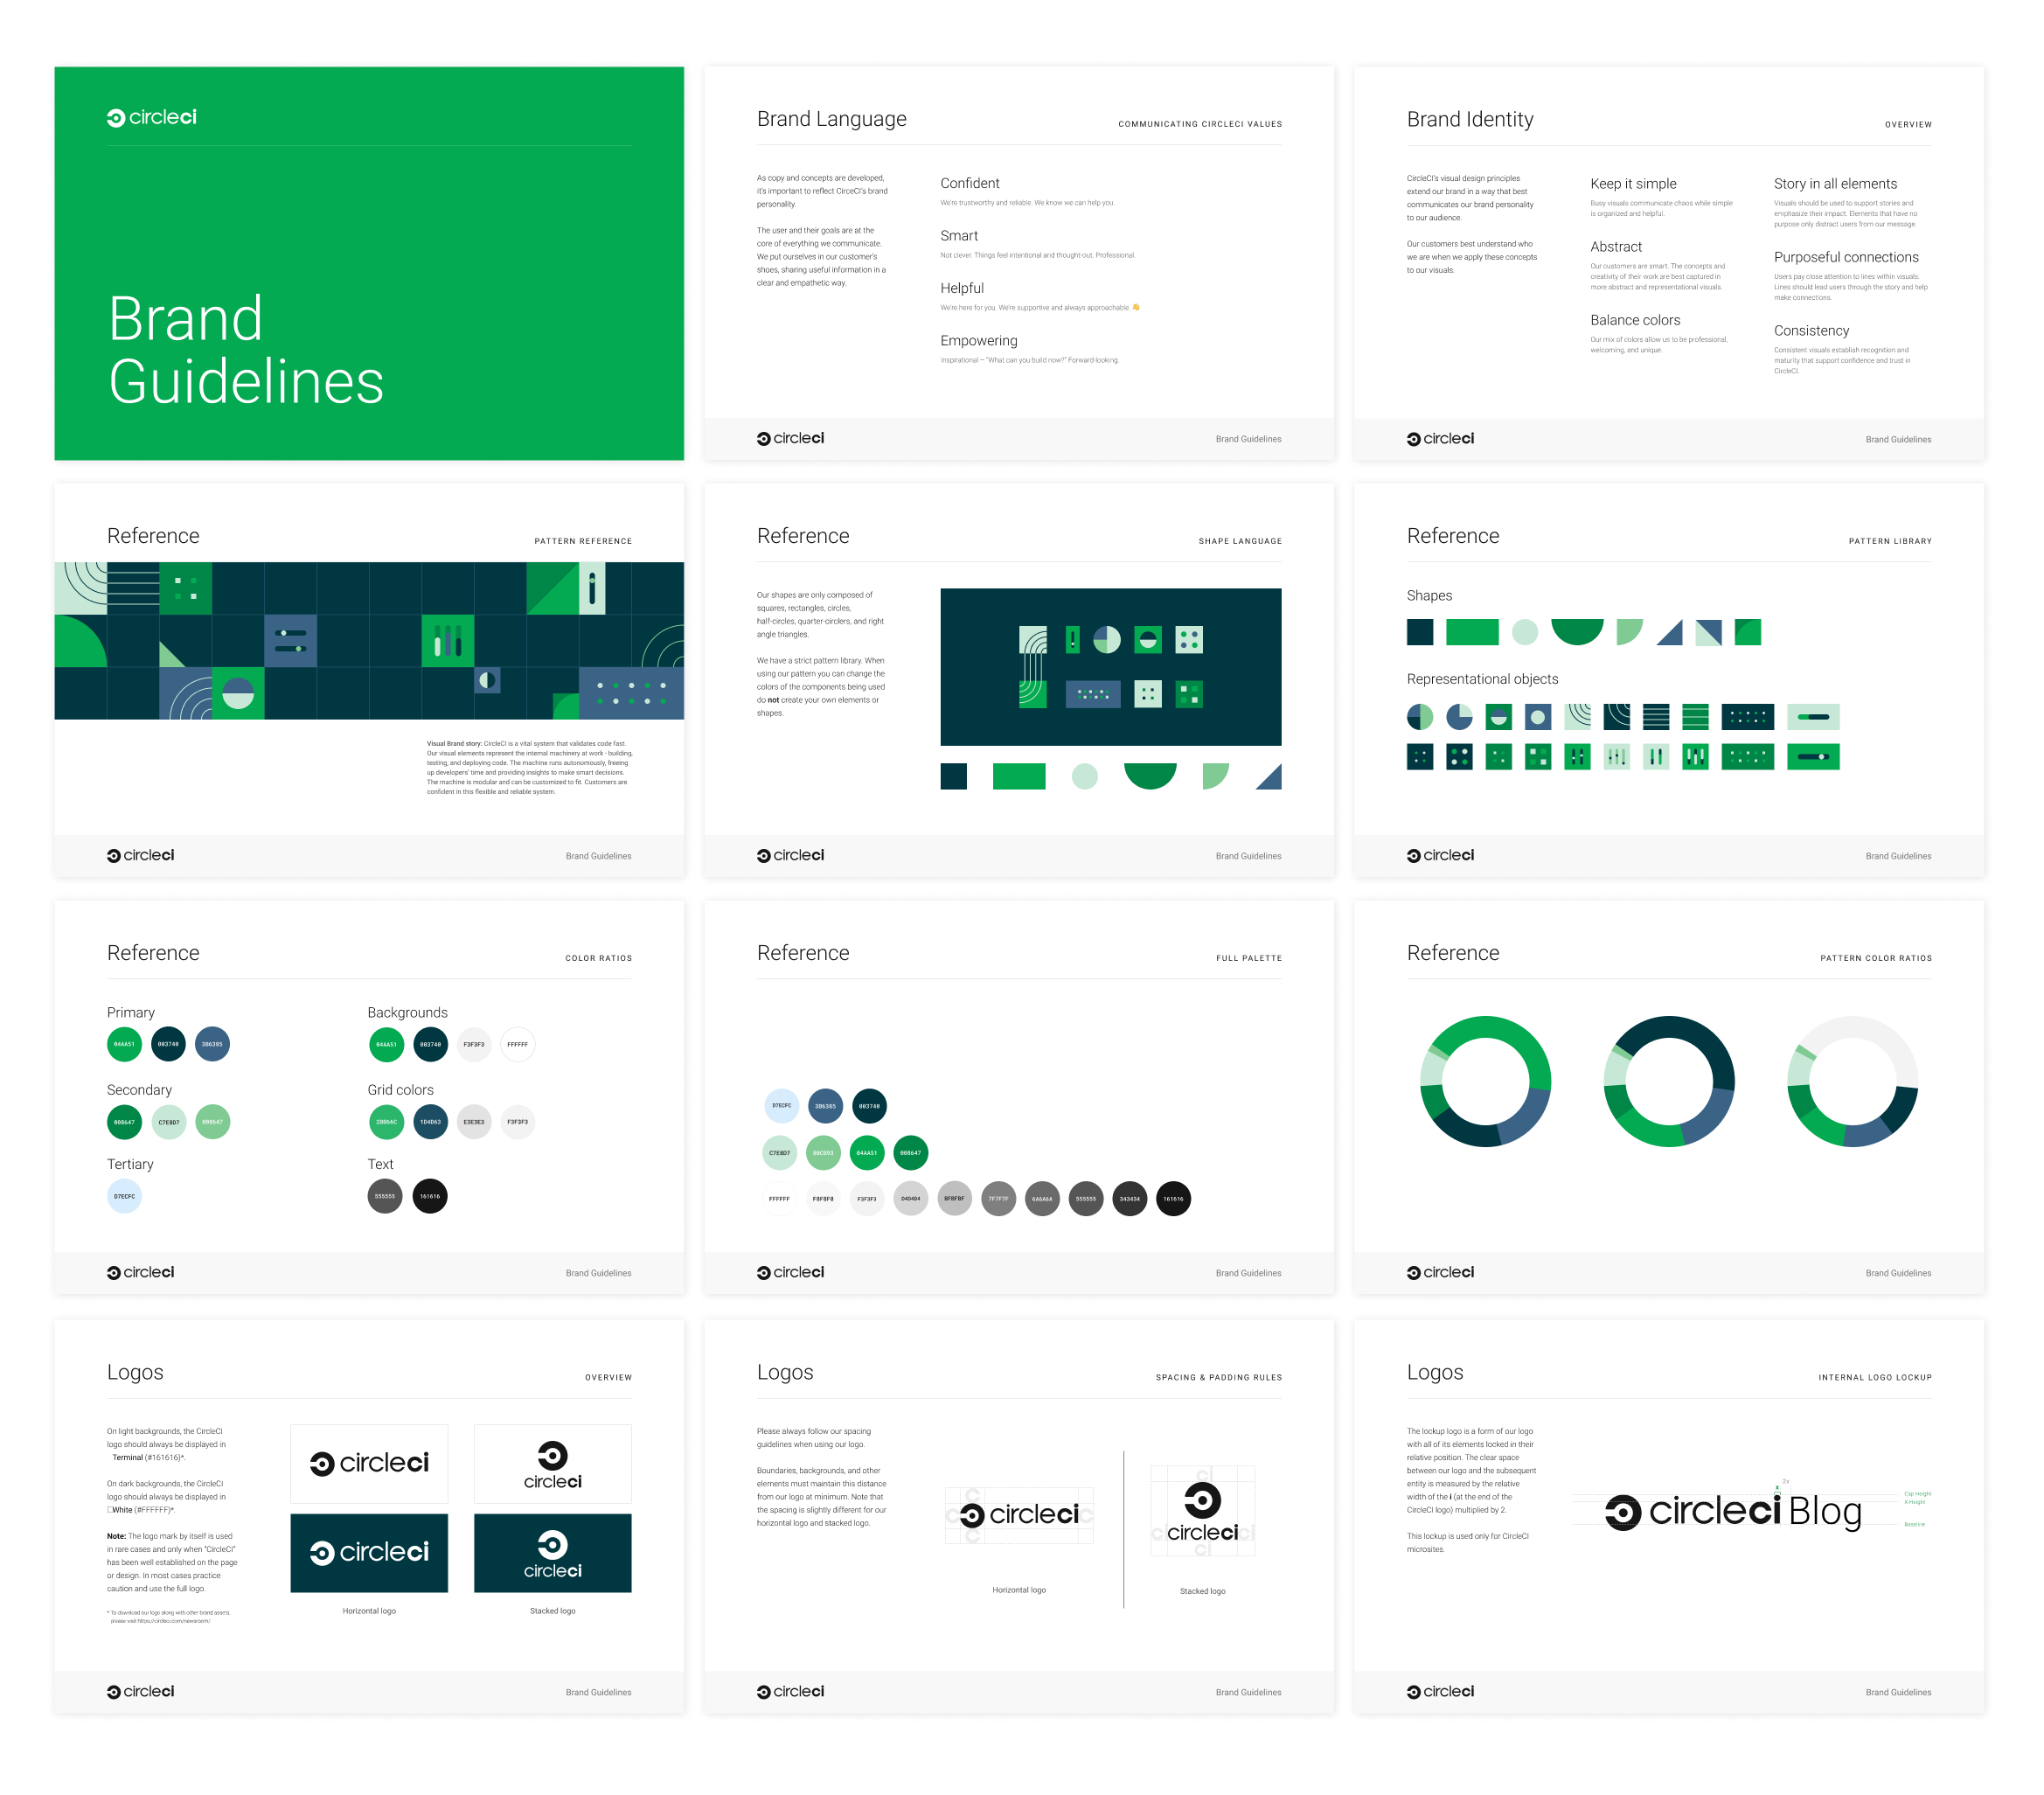 circleci brand guide pages